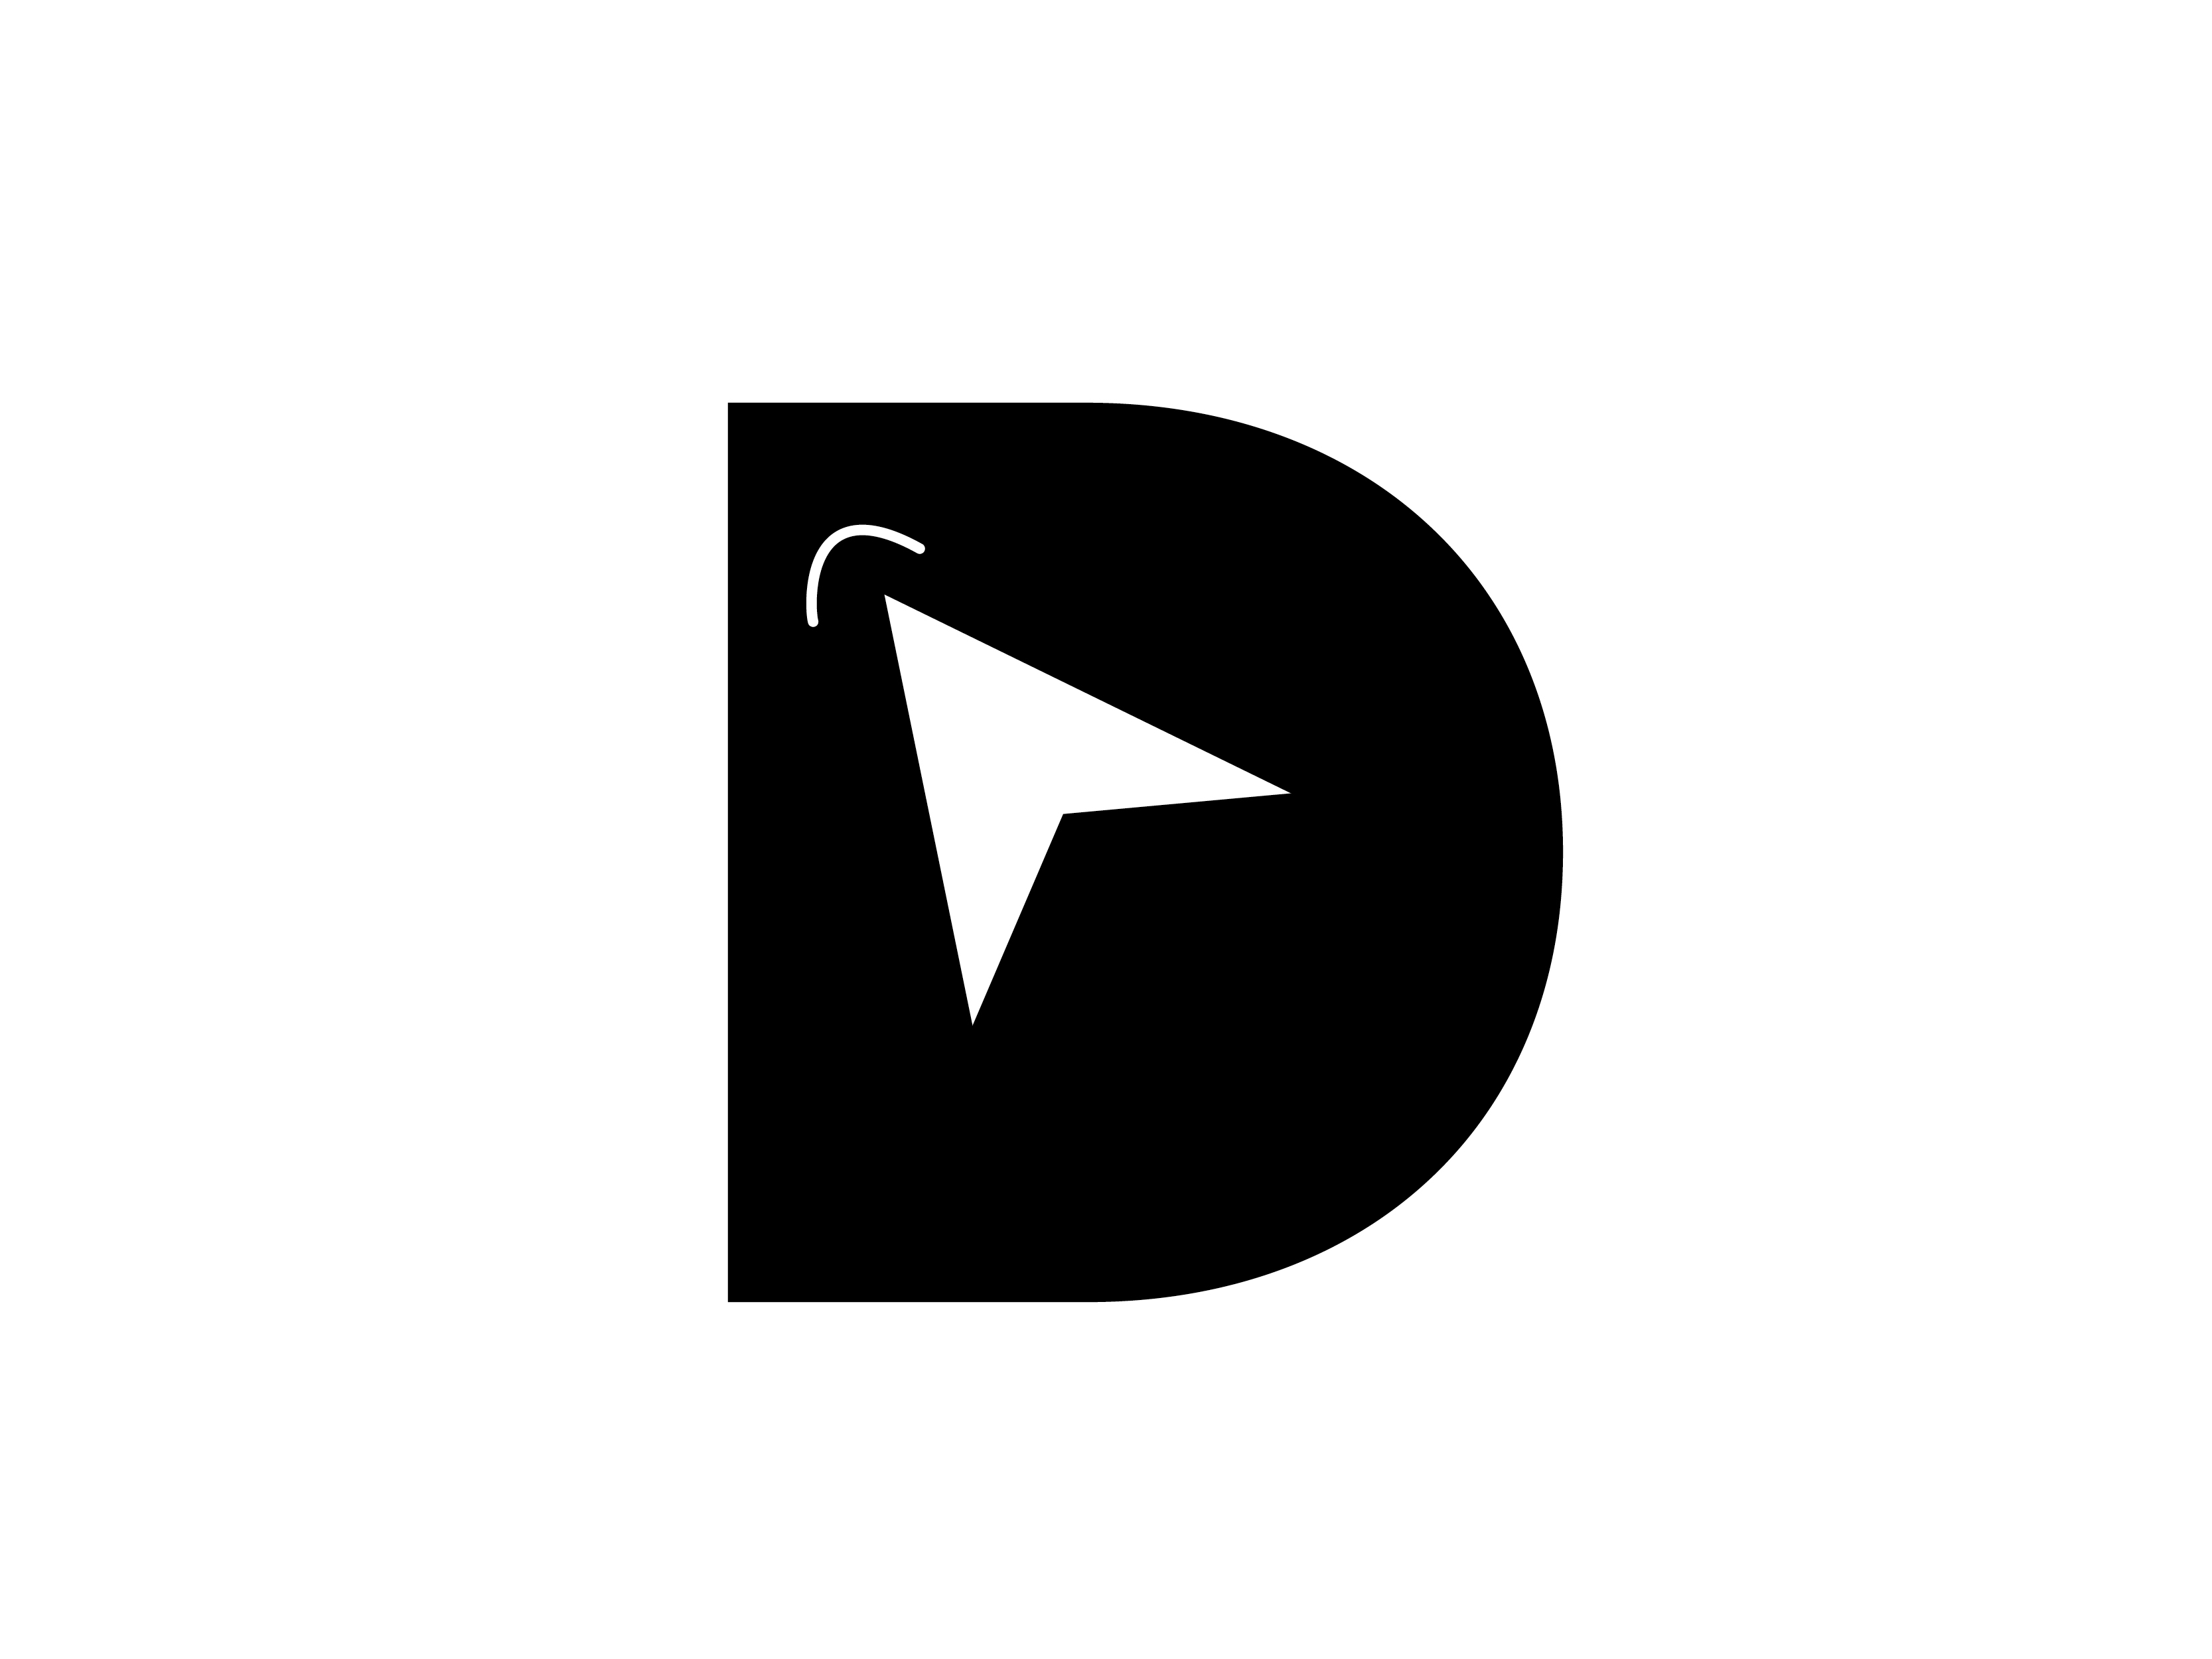 D graphic for logo